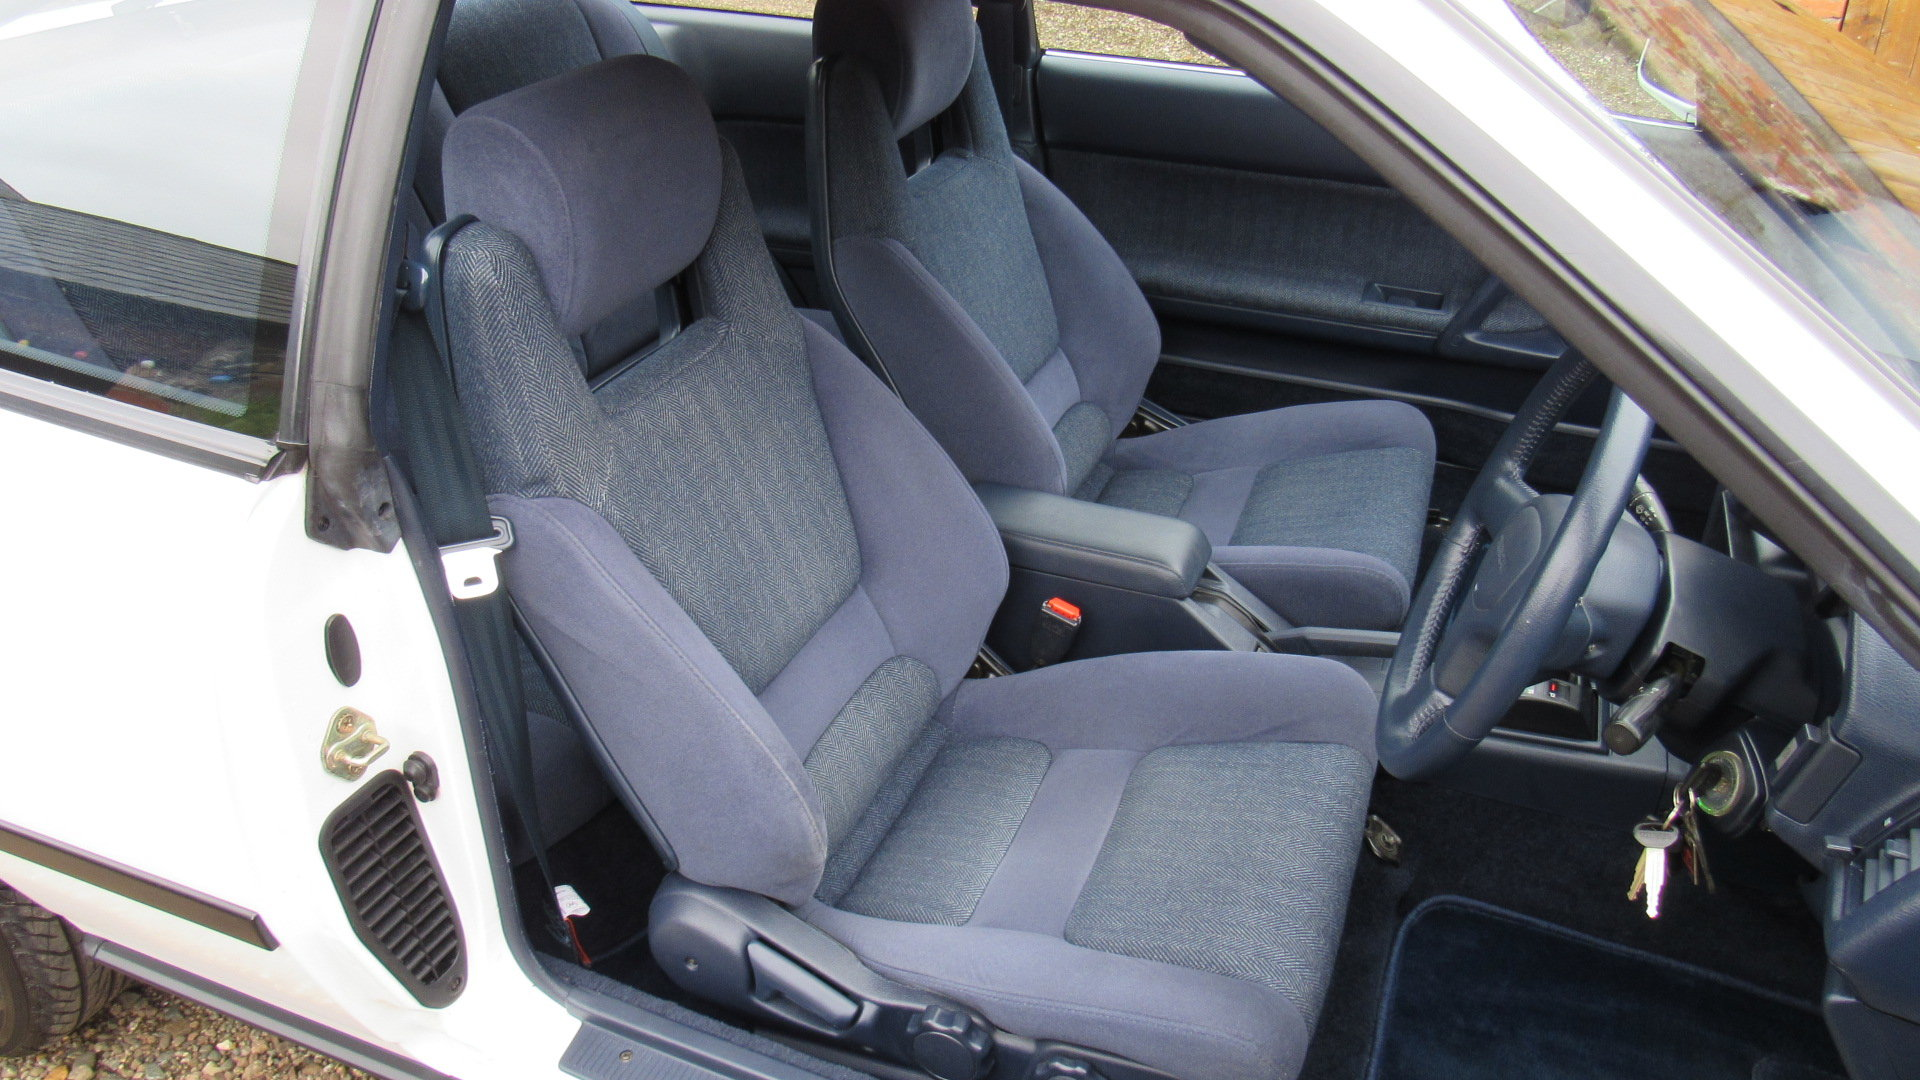 1988 Toyota Celica GT  For Sale (picture 3 of 5)